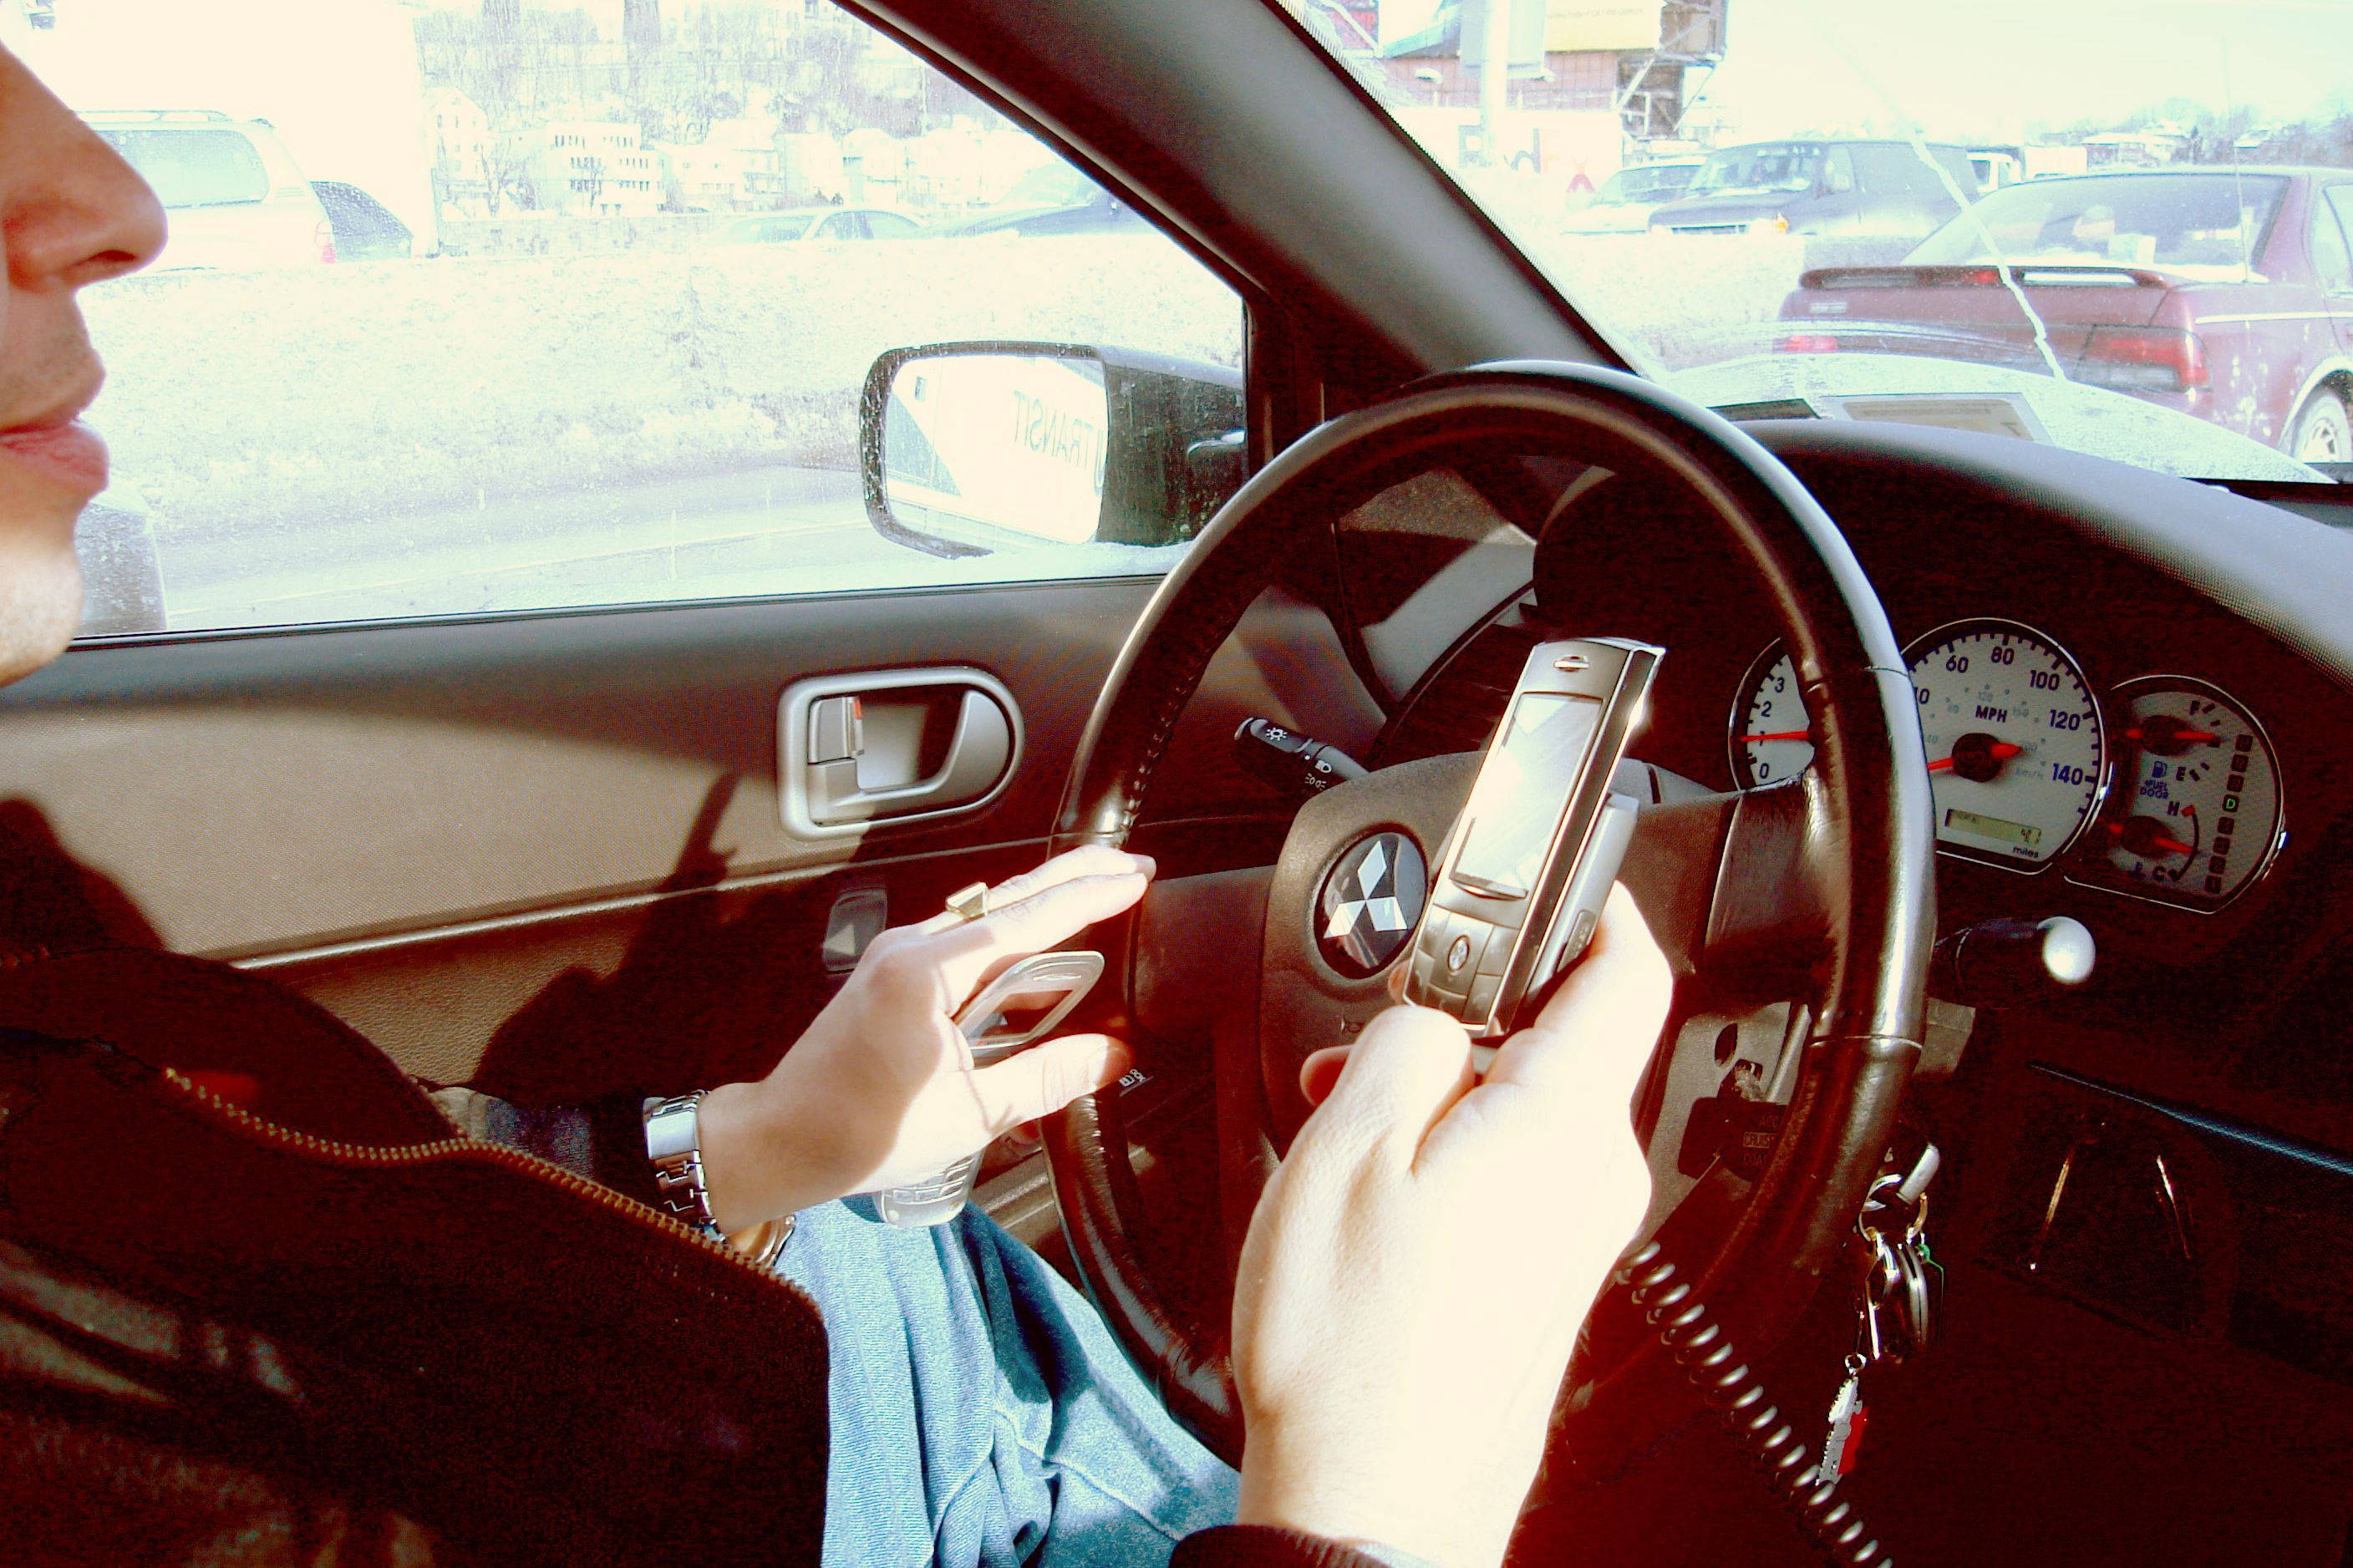 Calls for 'better enforcement against drivers using mobile phones'